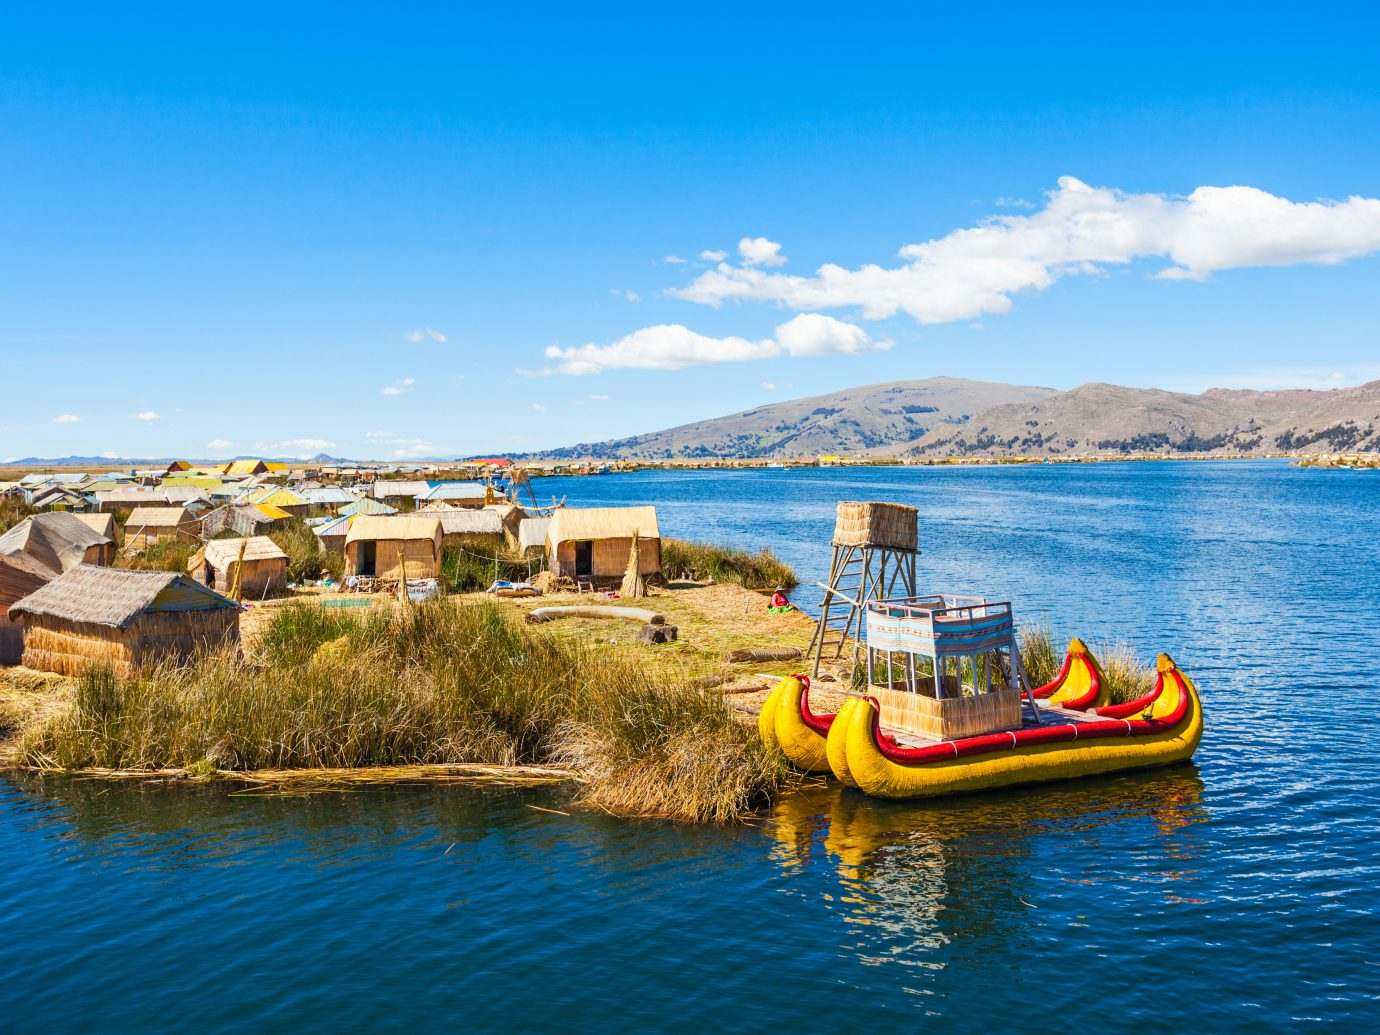 Uros floating island near Puno city, Peru